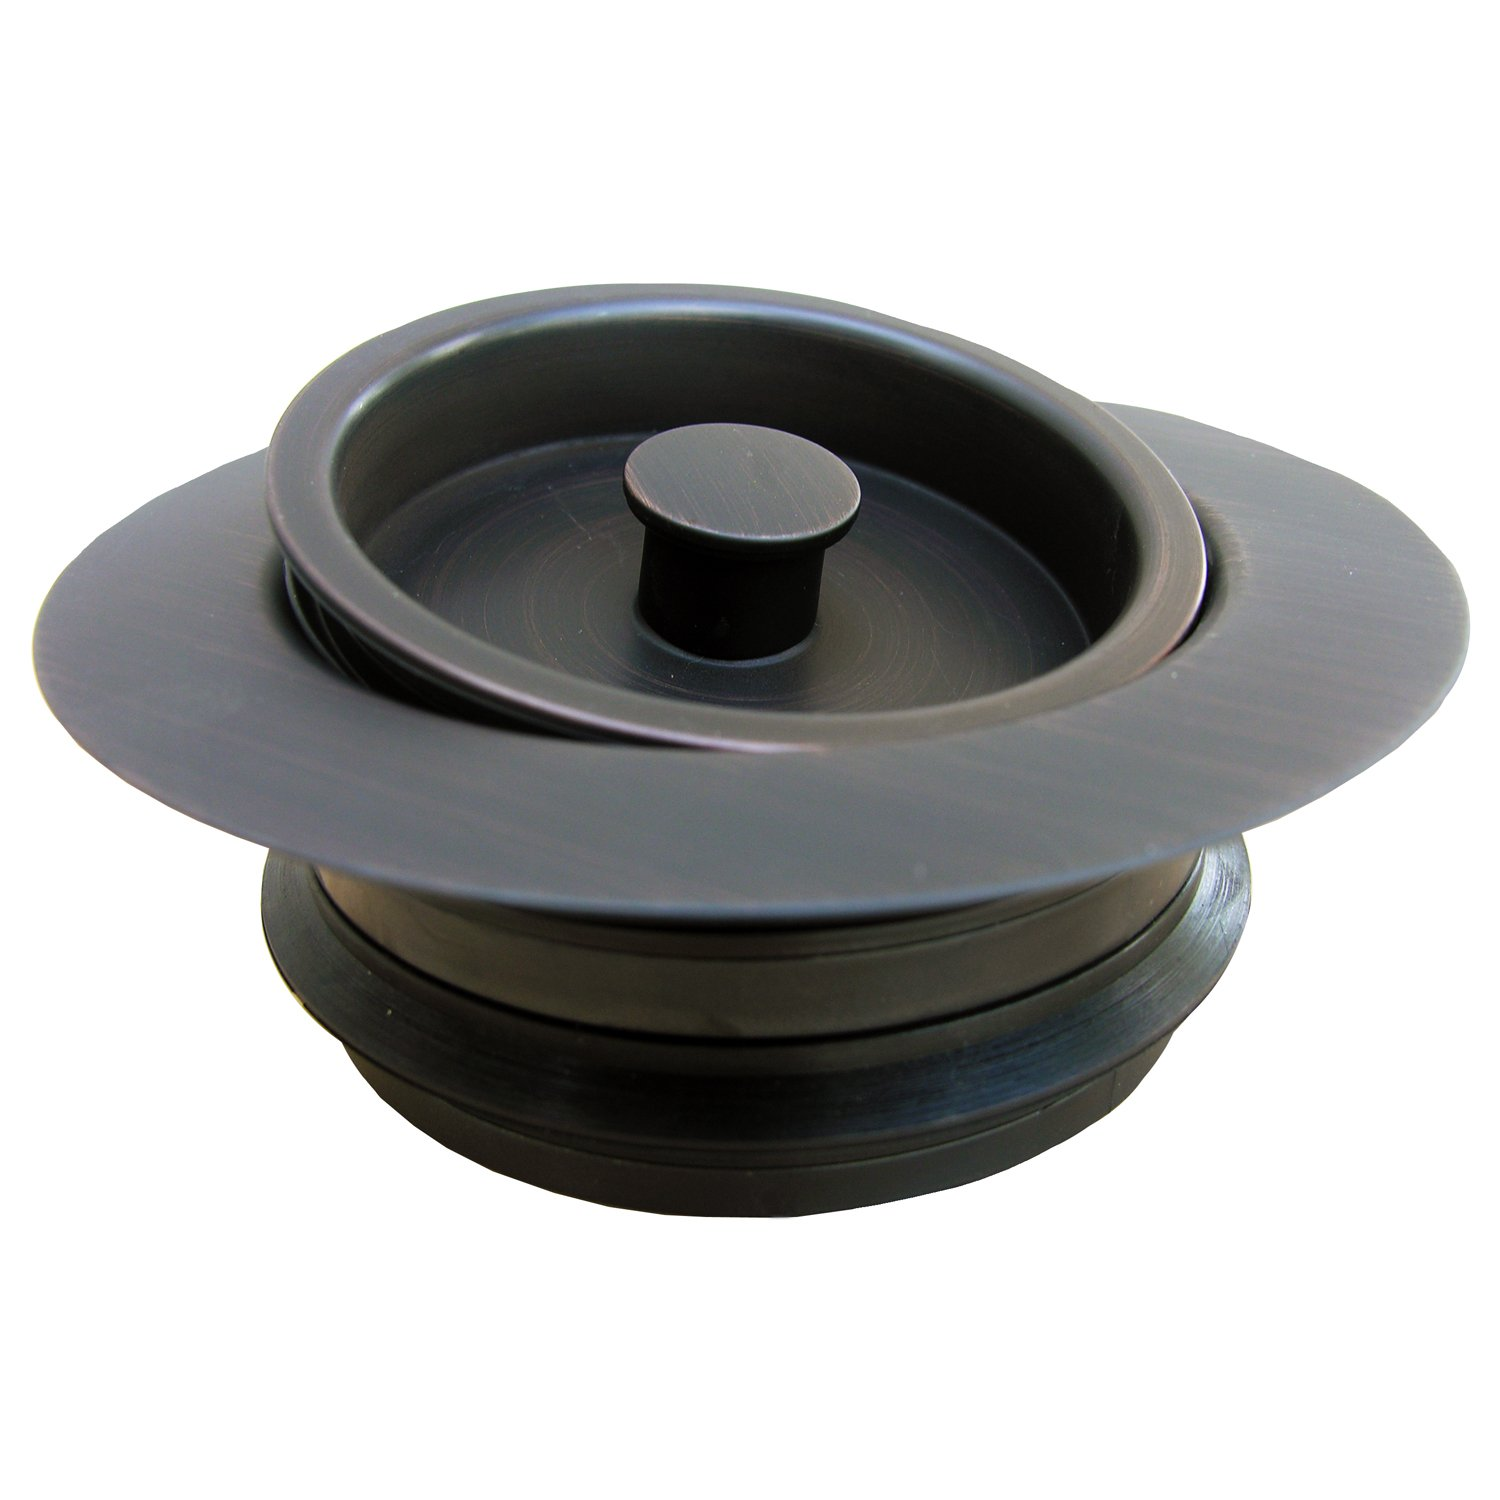 LASCO 03-1075OB Heavy Duty, PVC Body, Universal Disposal Stopper And Flange, Dark Oil Rubbed Bronze by LASCO